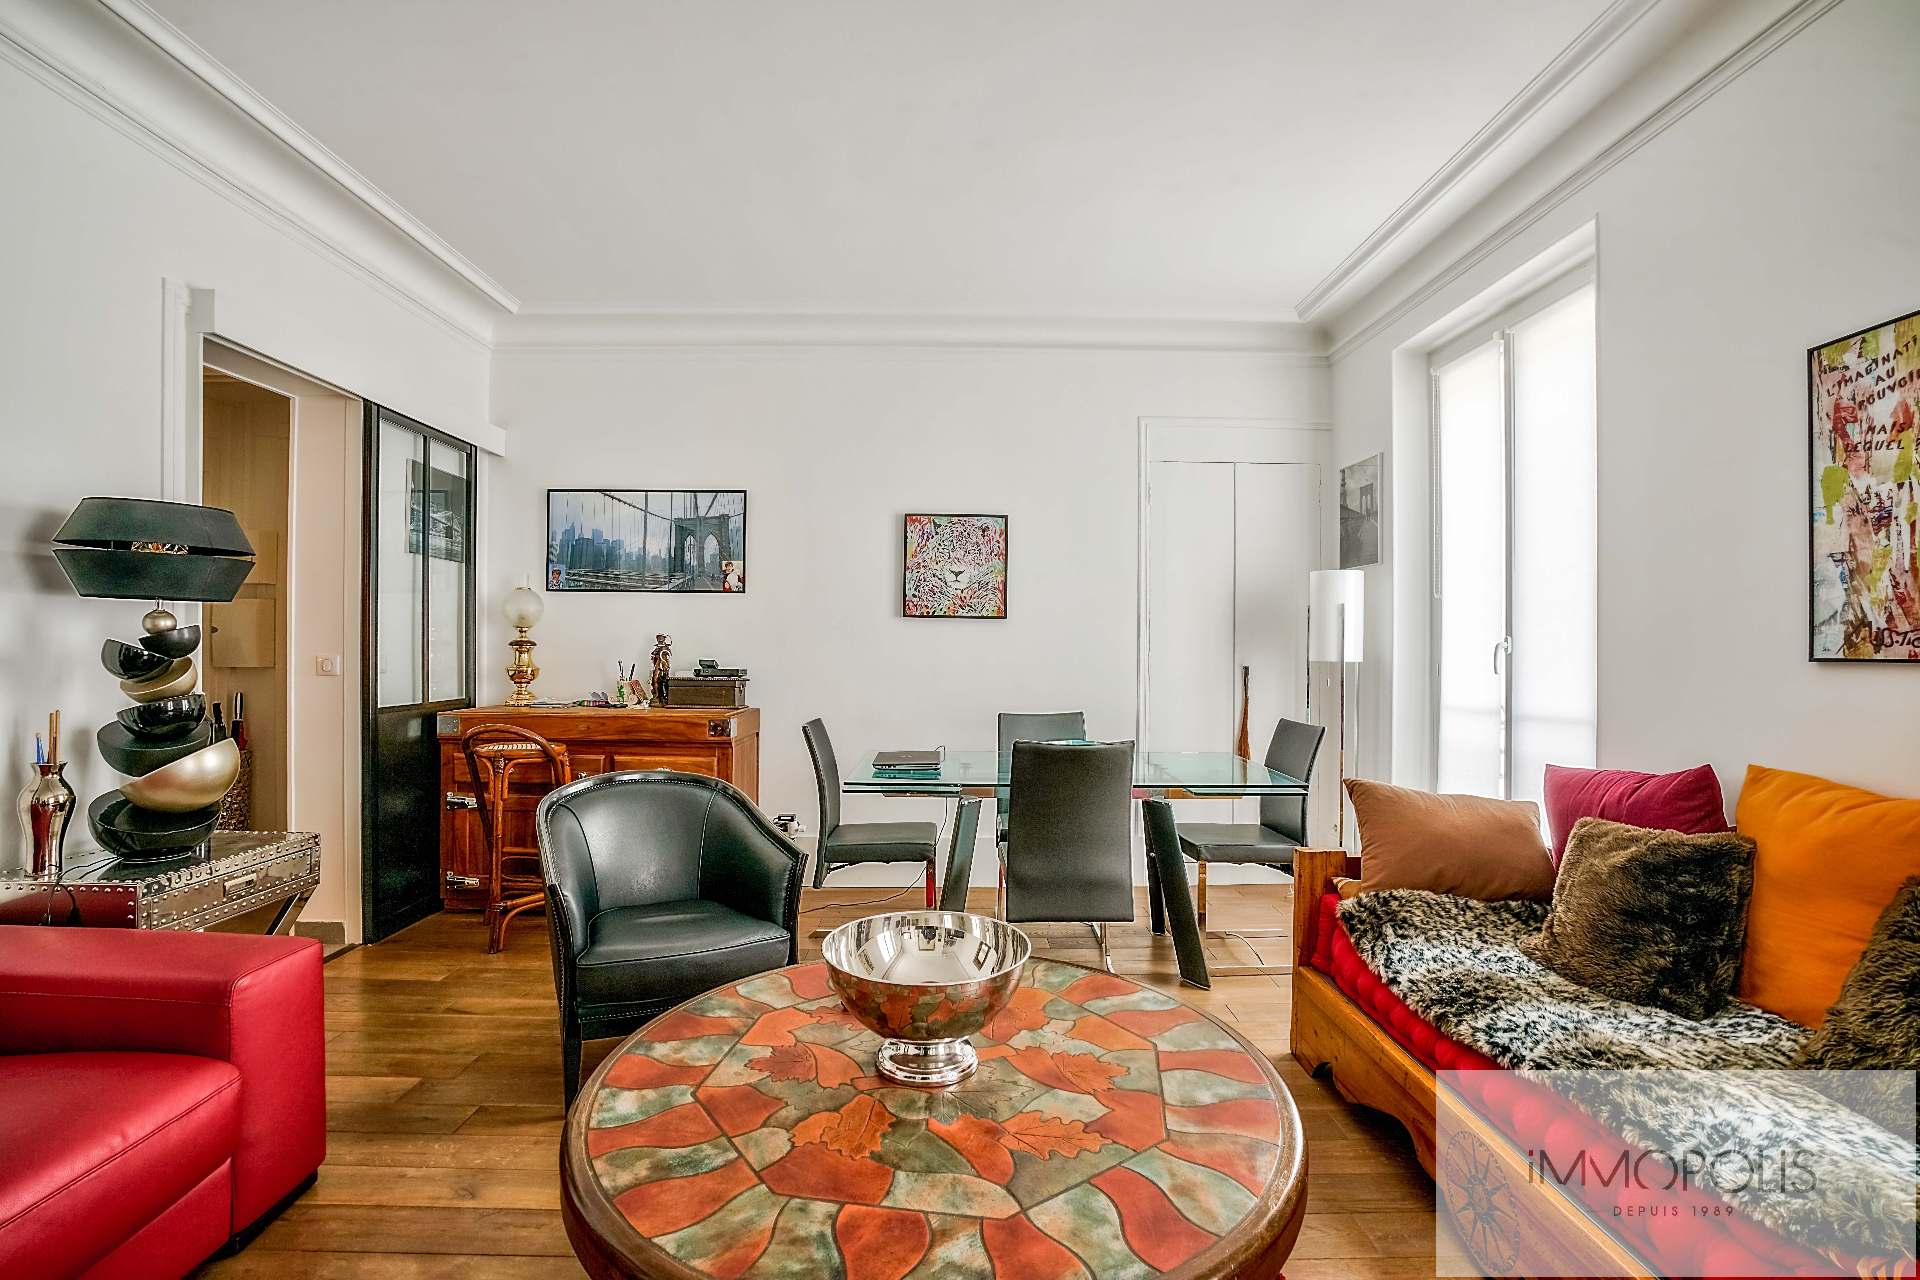 Superb 3 room apartment (currently 1 bedroom) in Montmartre, on the 3rd floor with elevator: great amenities! 1